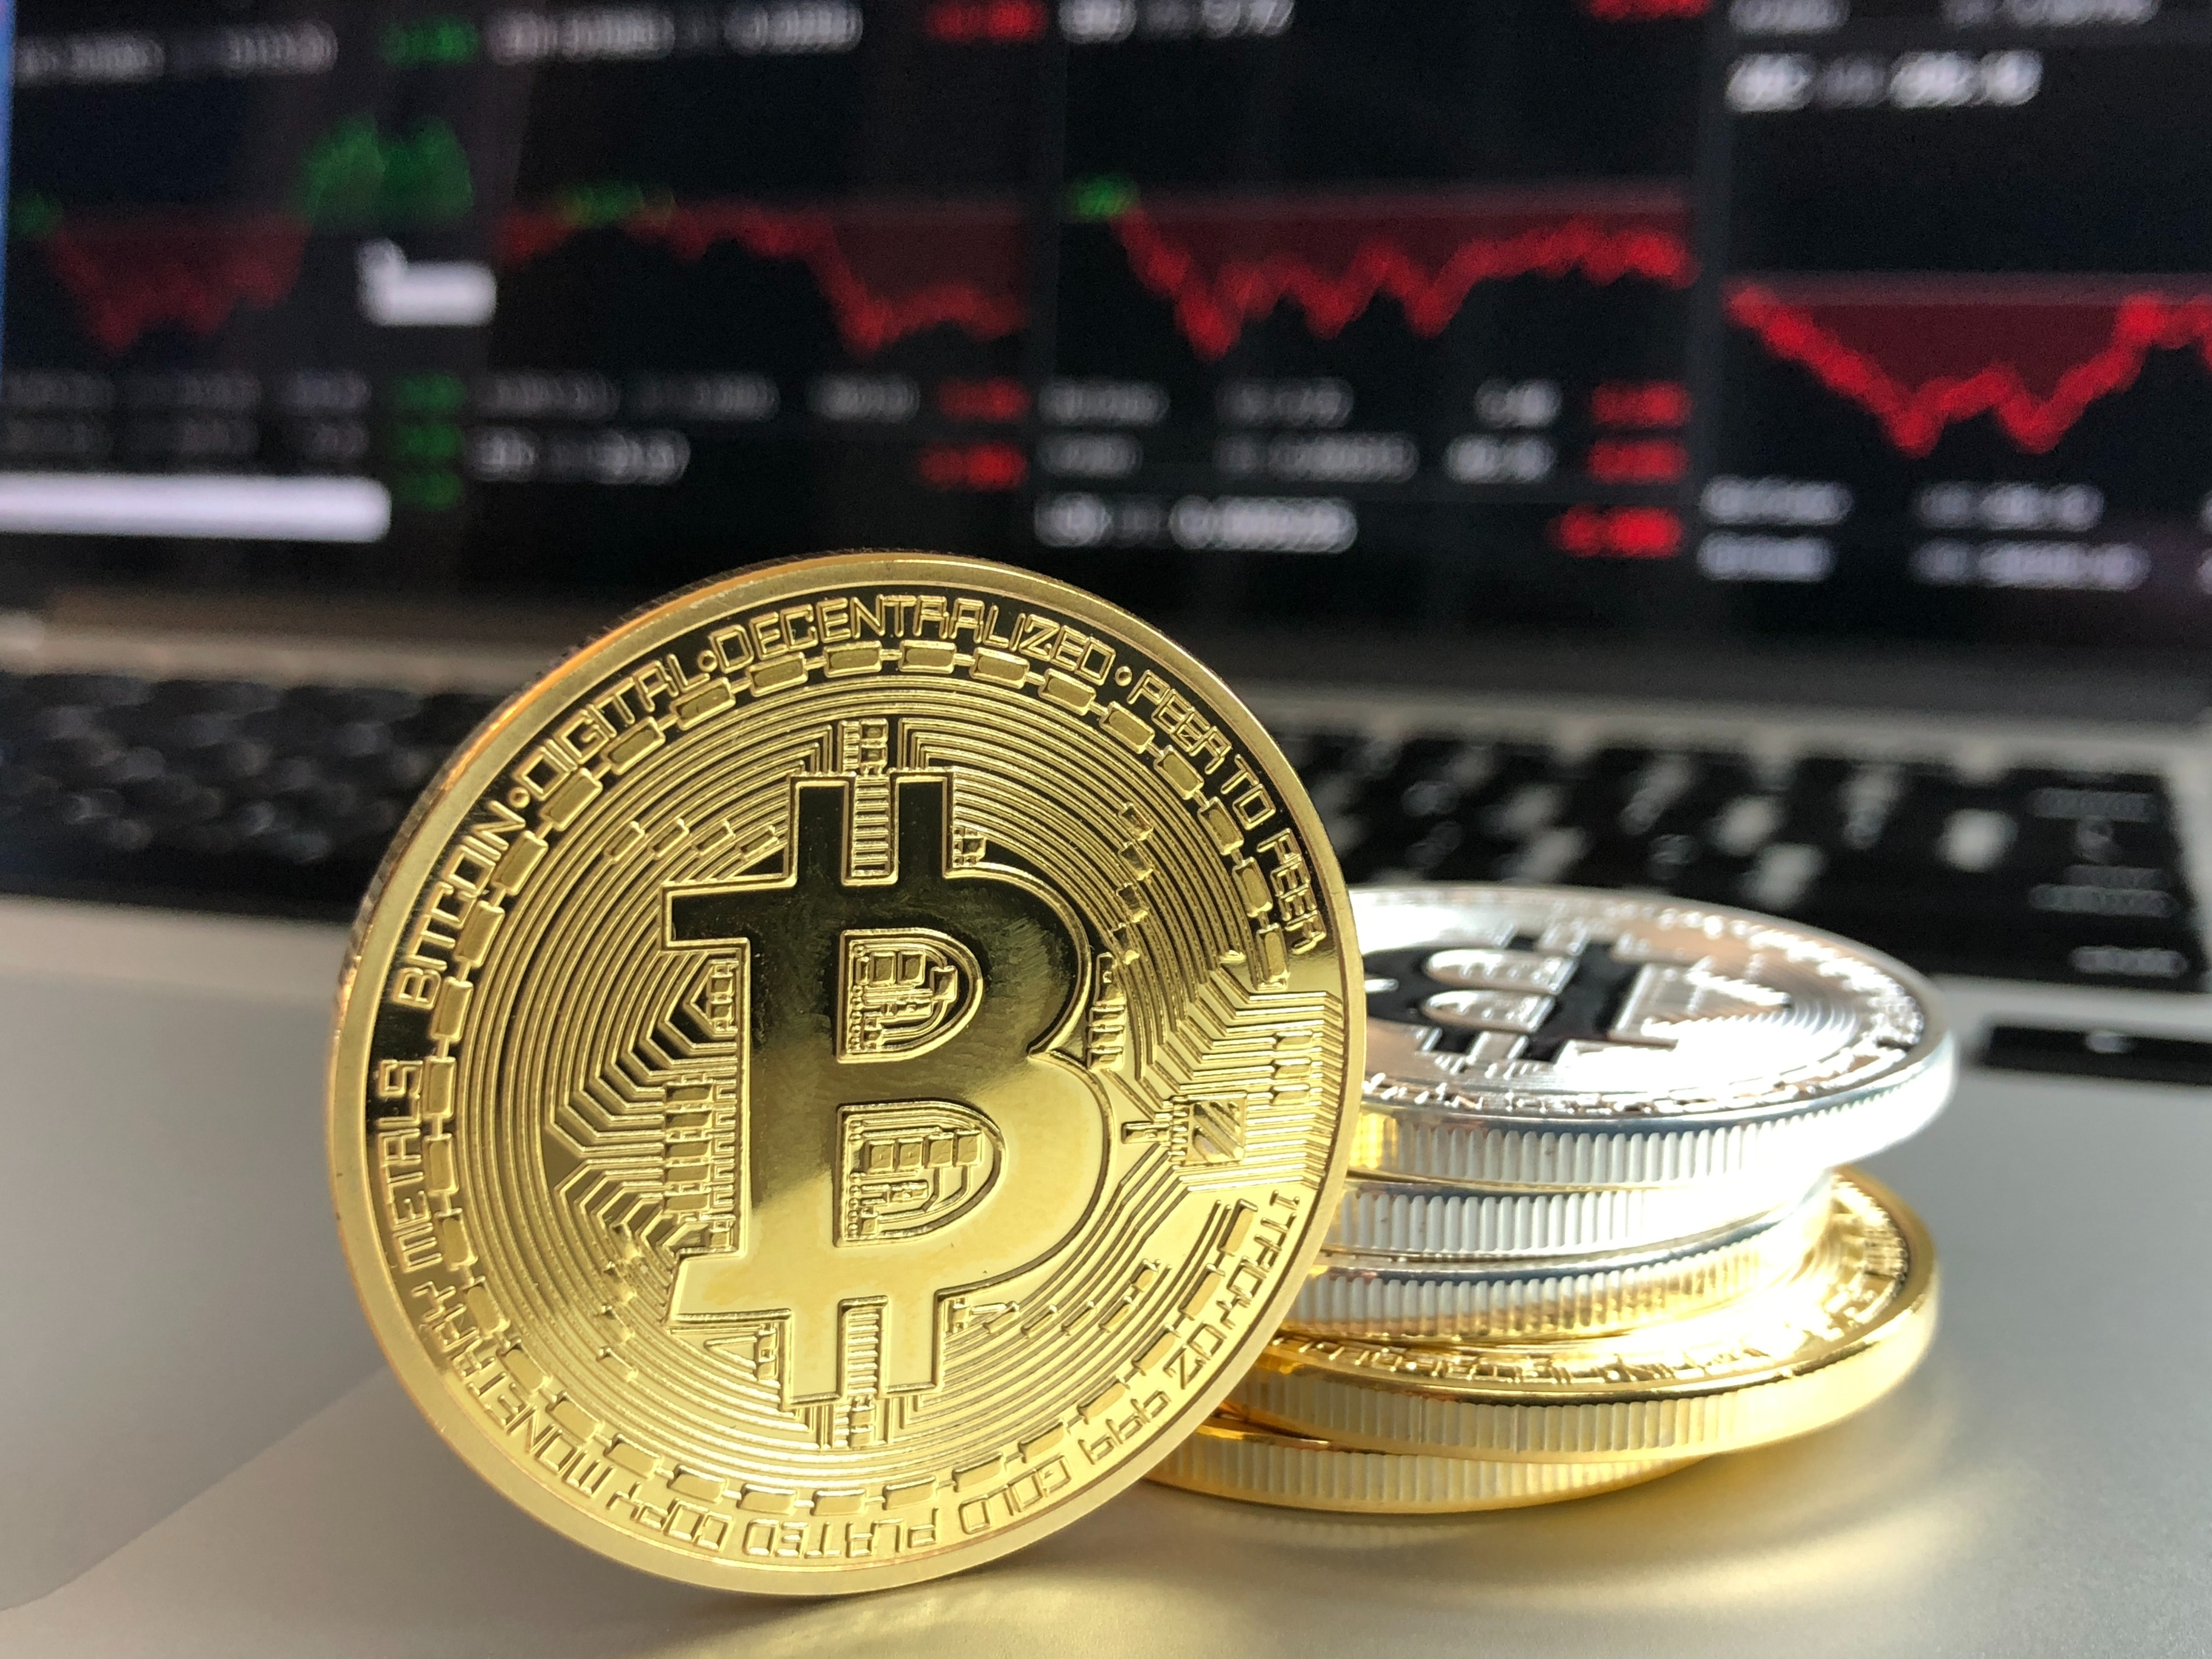 The World-Shaking Power of Cryptocurrency